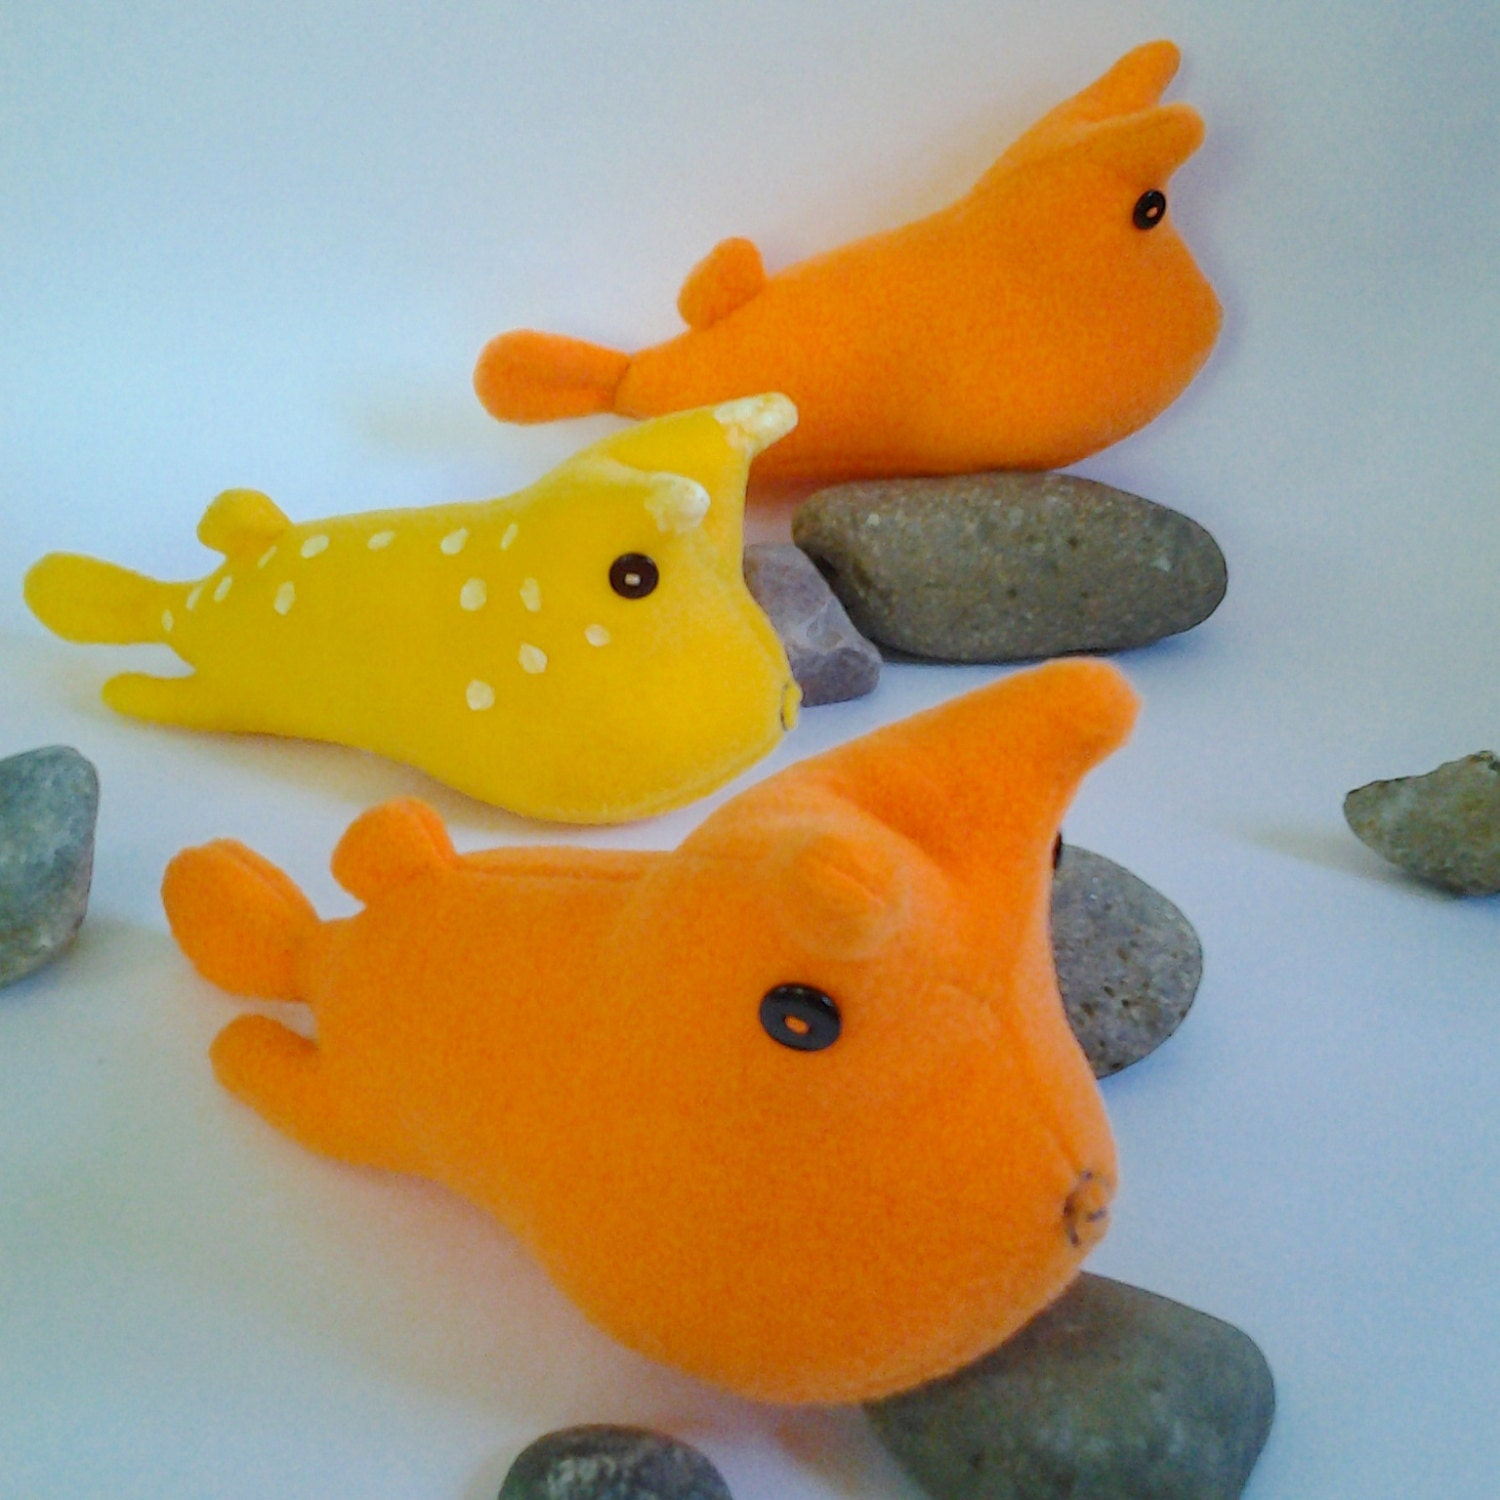 Cow fish sewing pattern easy sewing pattern soft toy pattern this is a digital file jeuxipadfo Images